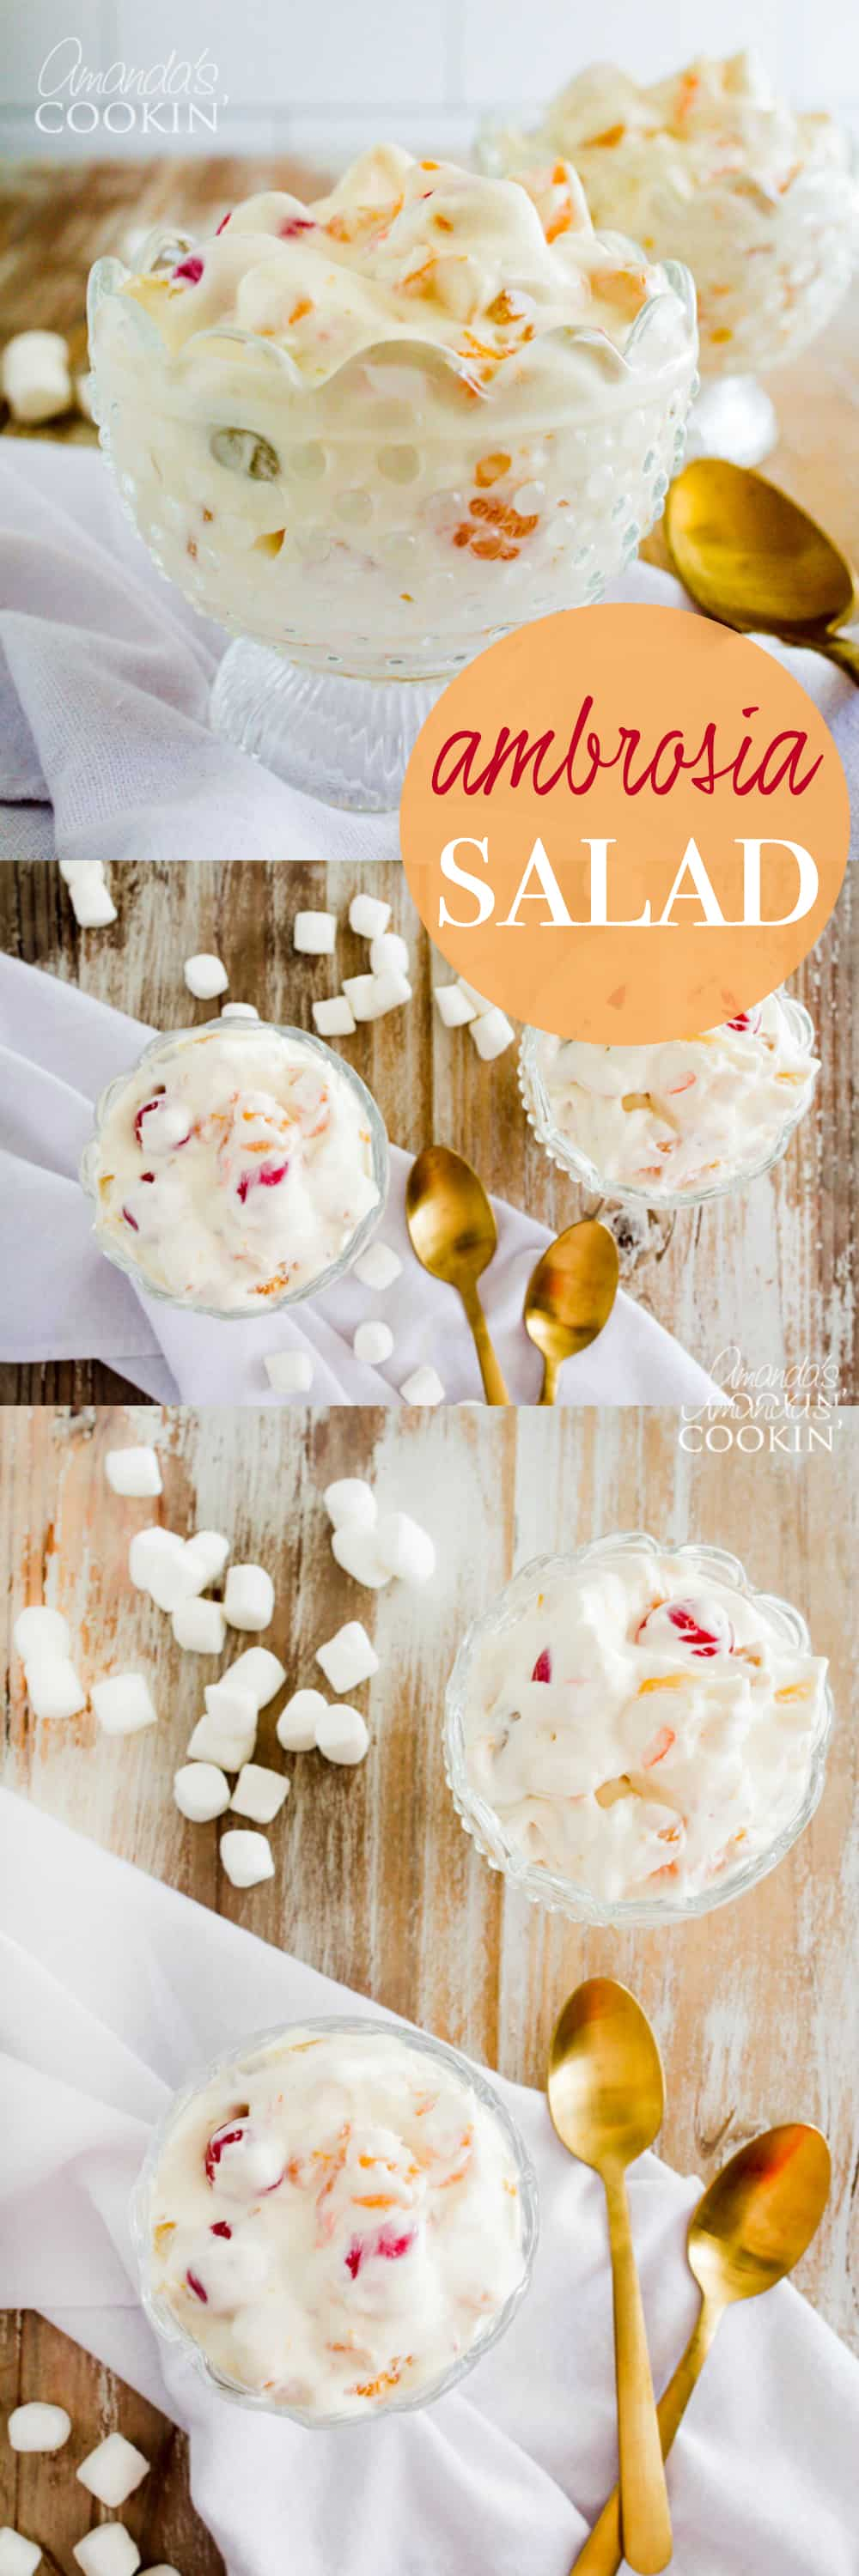 Ambrosia Salad is perfect for potlucks, family gatherings, birthday parties and just about anything else. It's simply something everyone seems to enjoy!